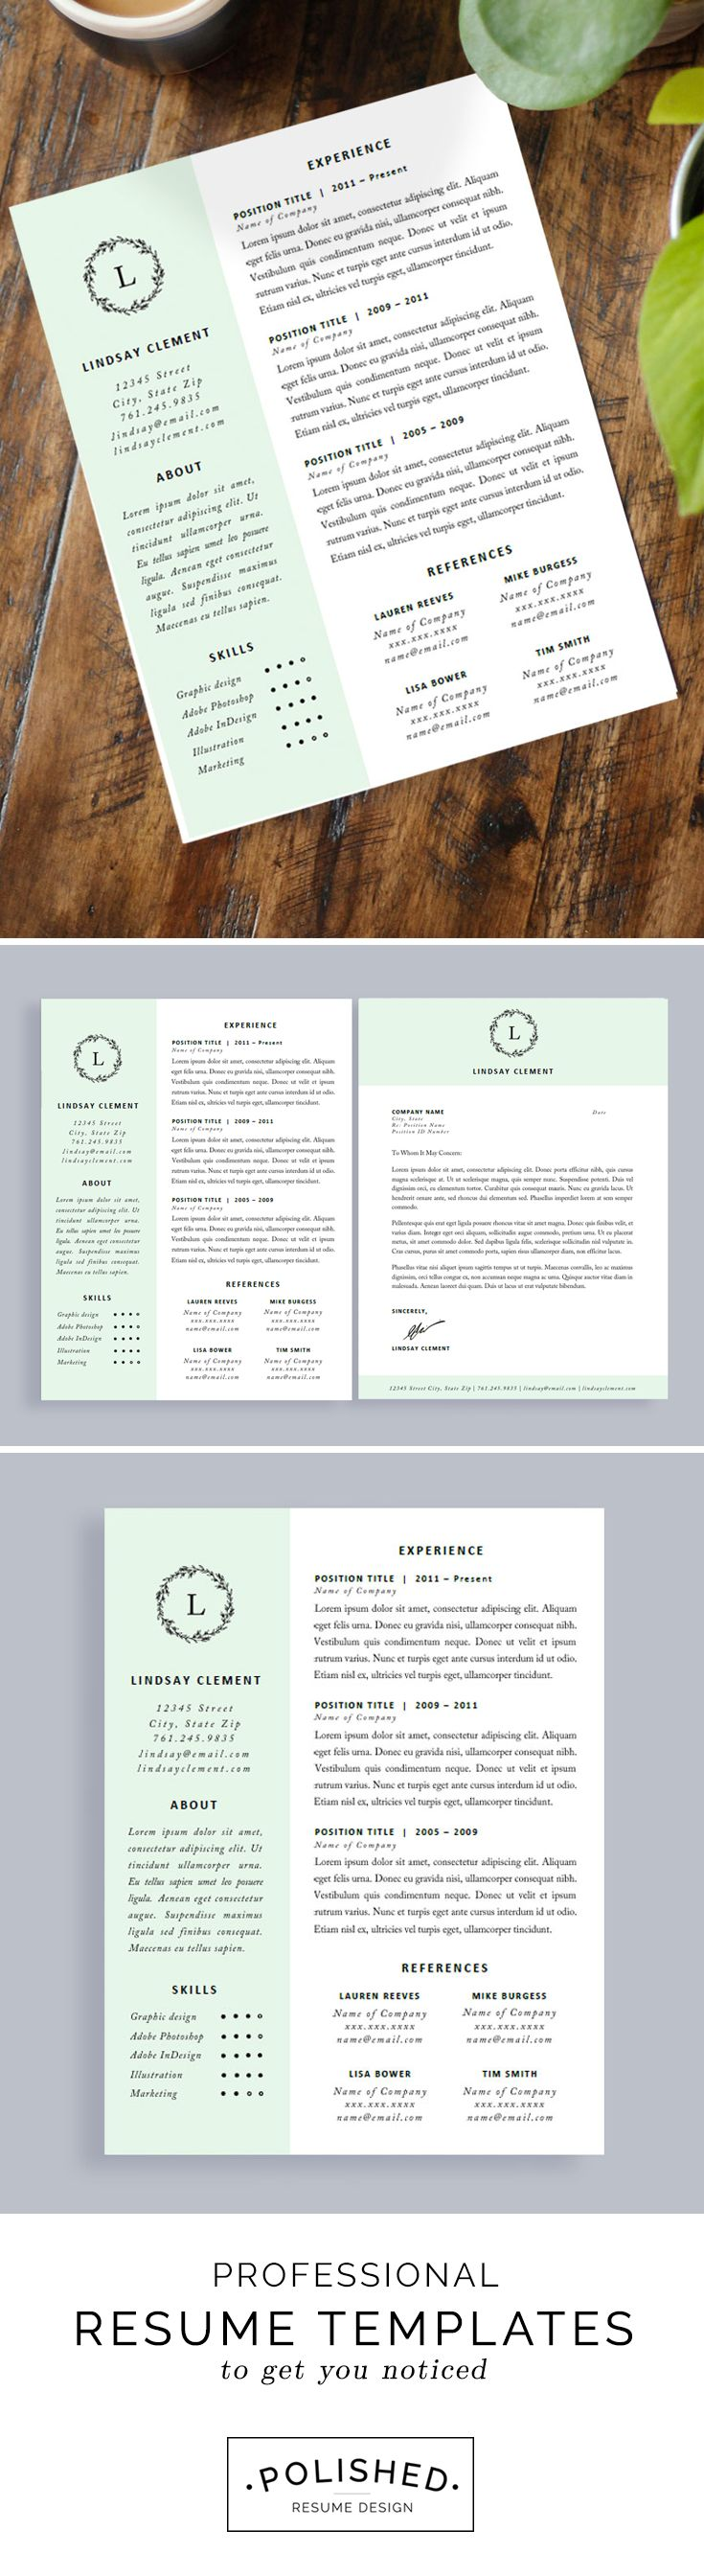 professional resume template cover letter cv professional modern creative resume template ms word for mac pc us letter best cv - Cover Letter And Resume Format